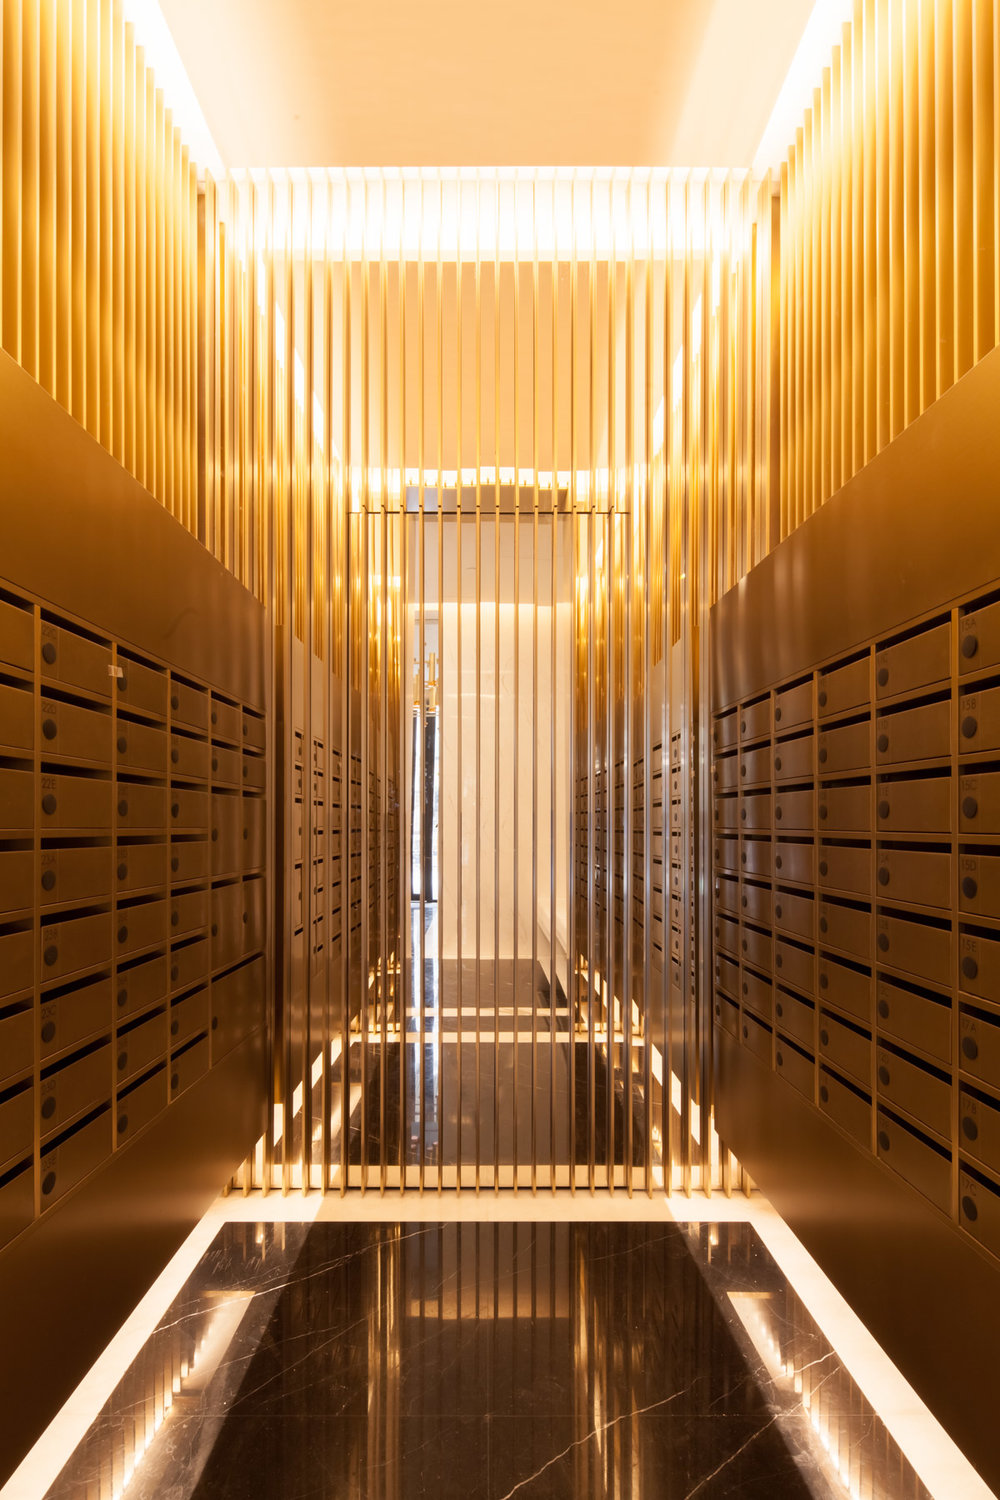 Luna_JM02_Lobby Ground-0003_Anahita Chouhan Architect Interior designer.jpg